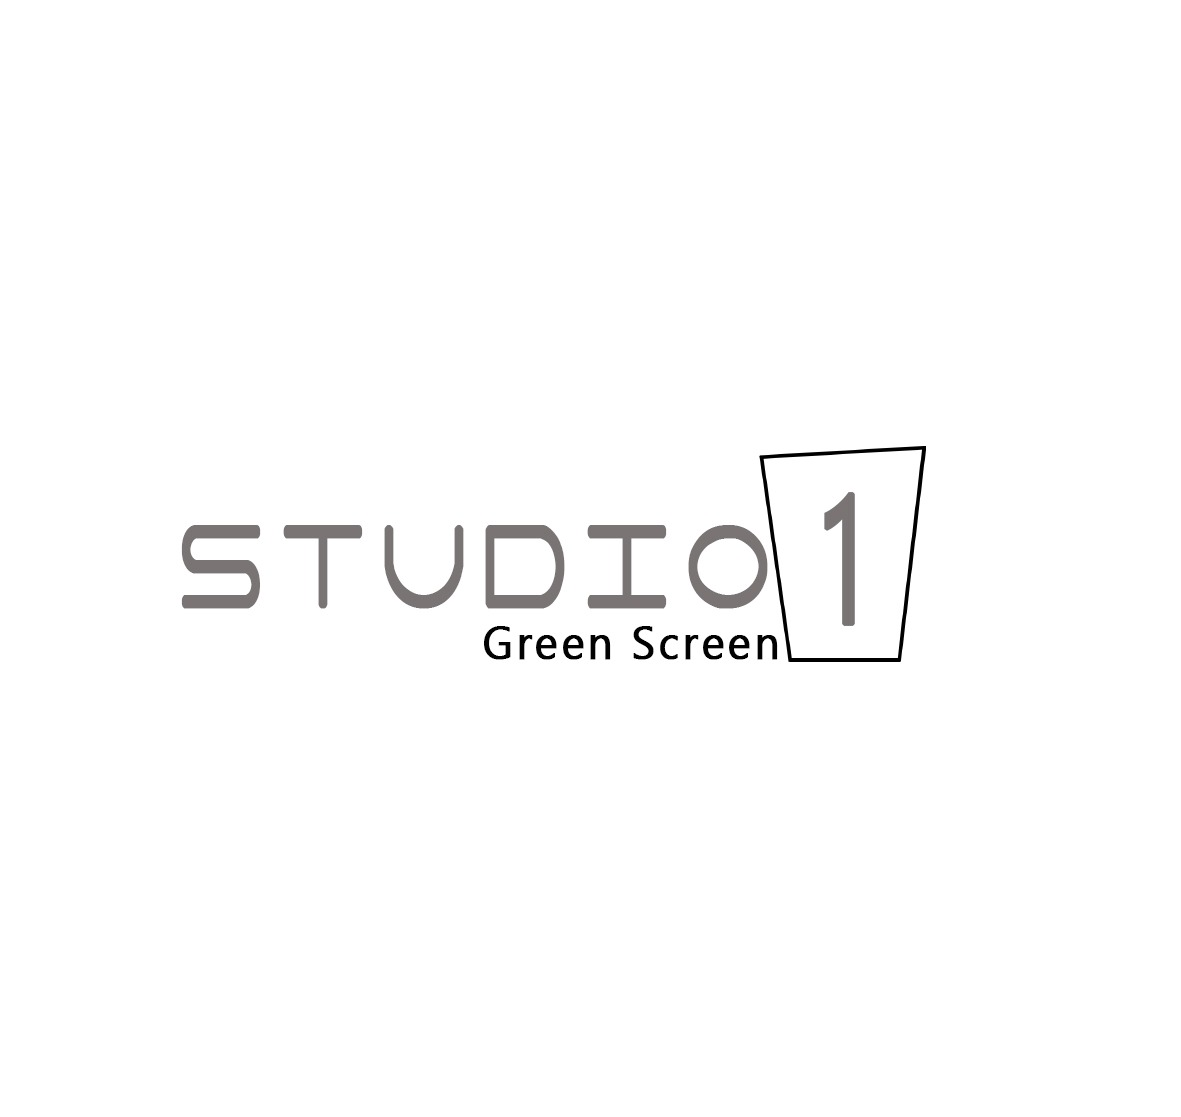 Studio%201%20name_edited